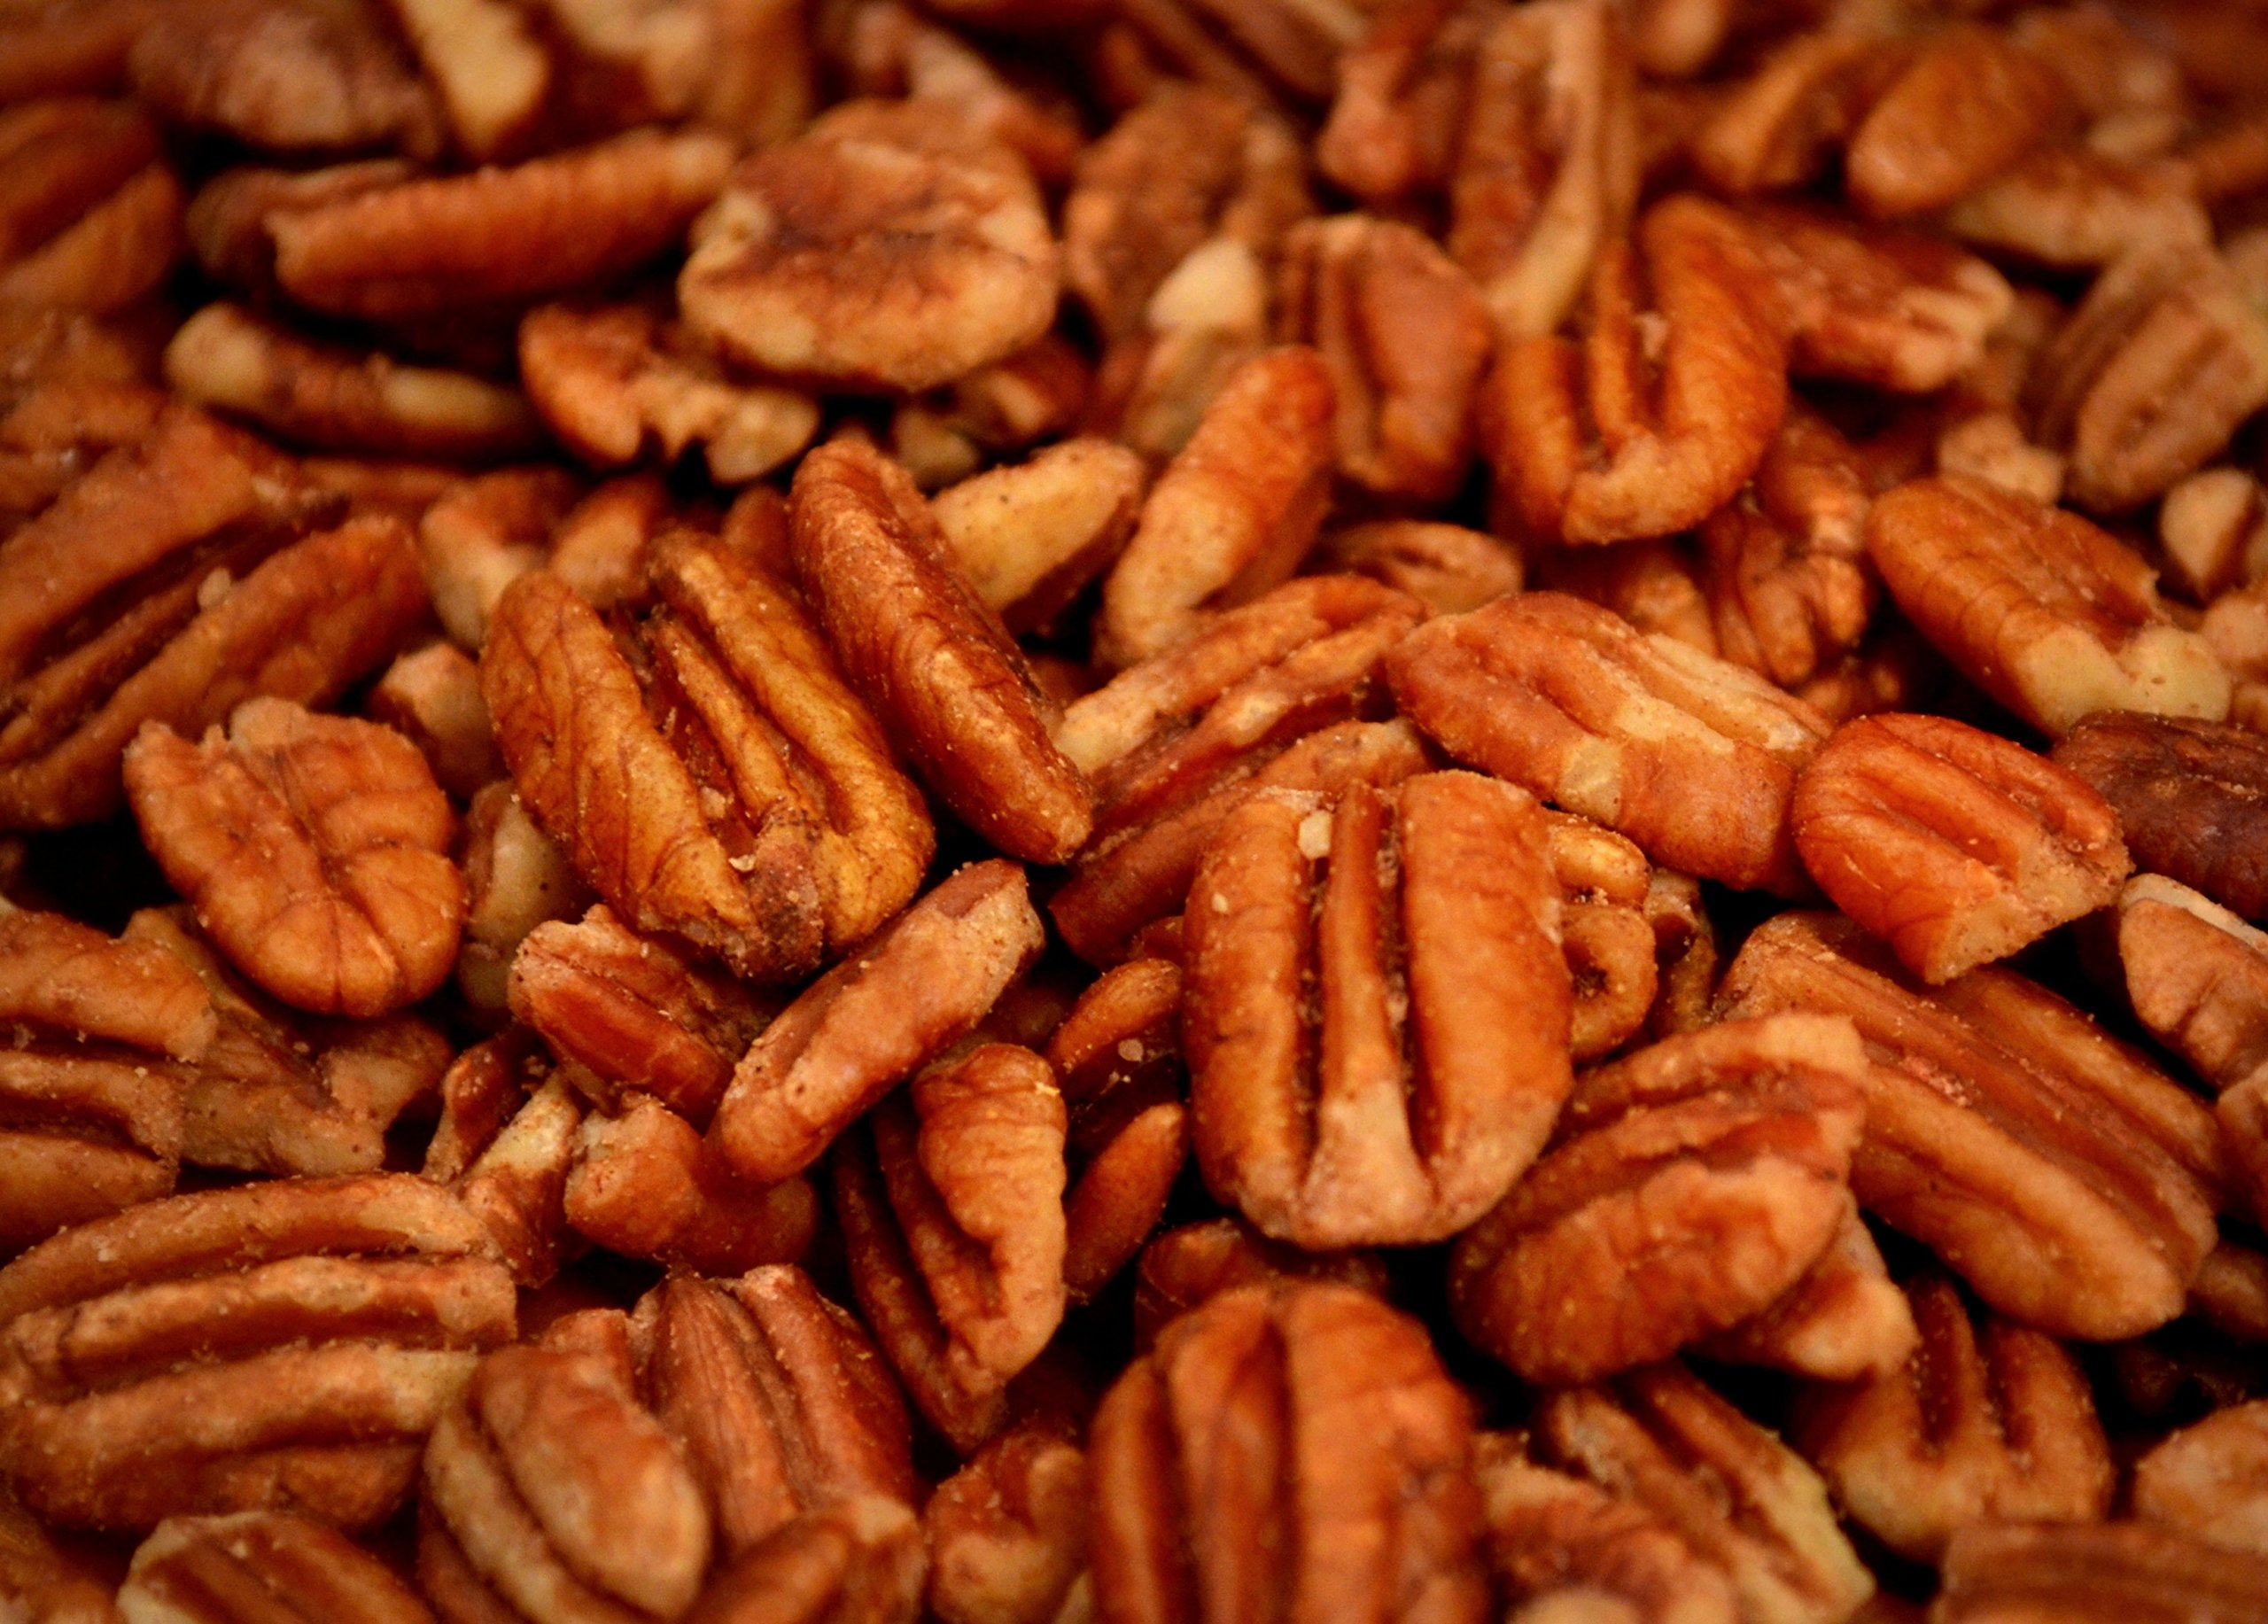 Unsprayed Sprouted 12 Ounce Raw Certified Organic Family Recipe Crispy Sea Salt Texas Native Pecans by PecanShop.com